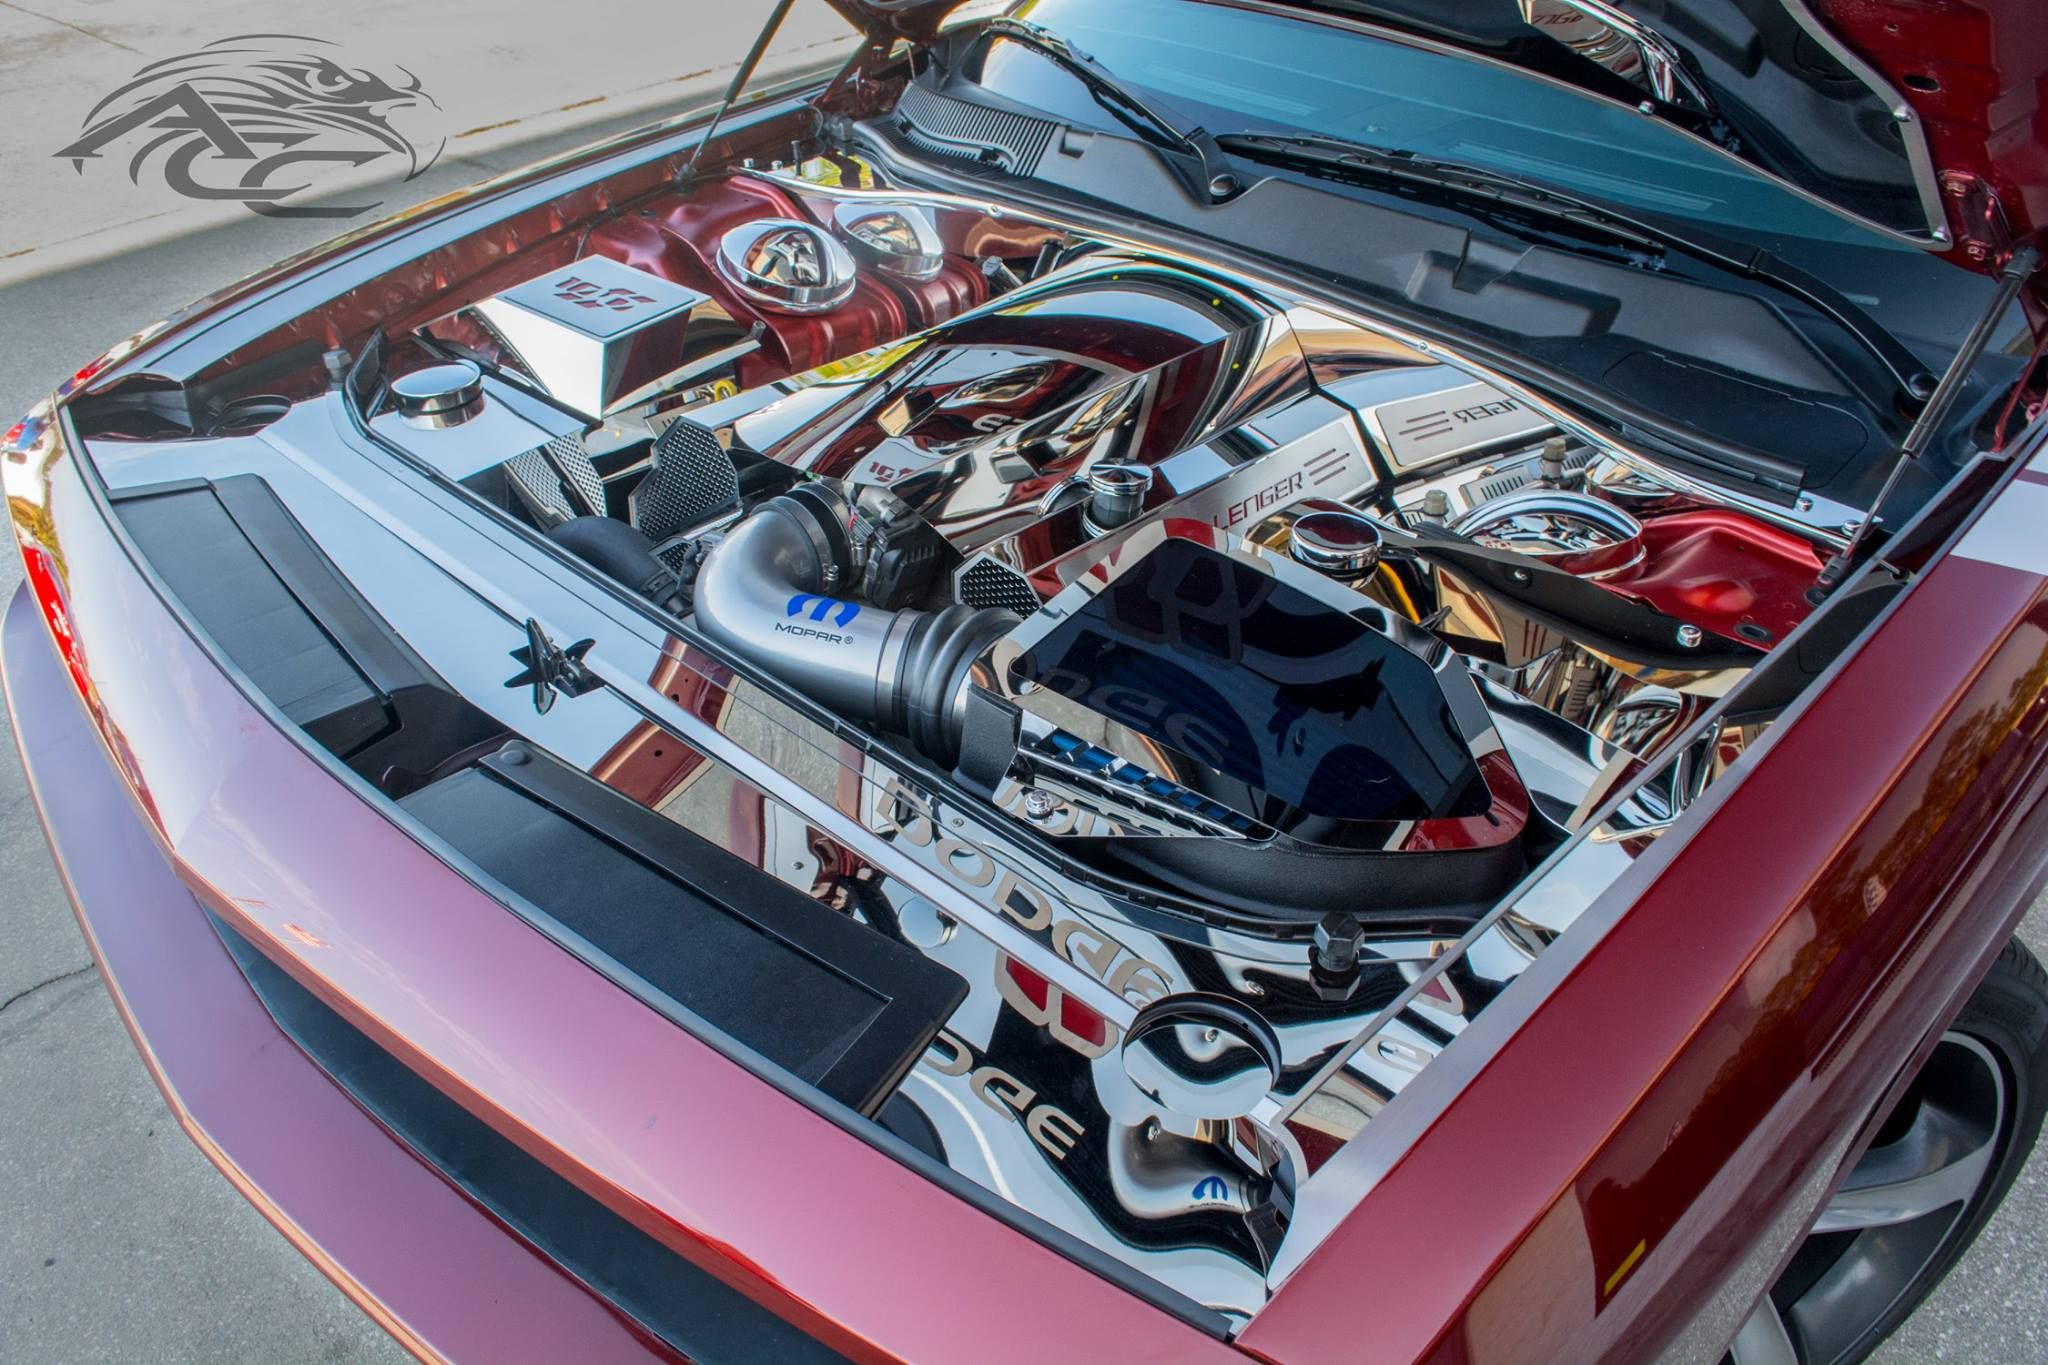 100th anniversary dodge challenger american car craft custom car show worthy engine bay  [ 2048 x 1365 Pixel ]